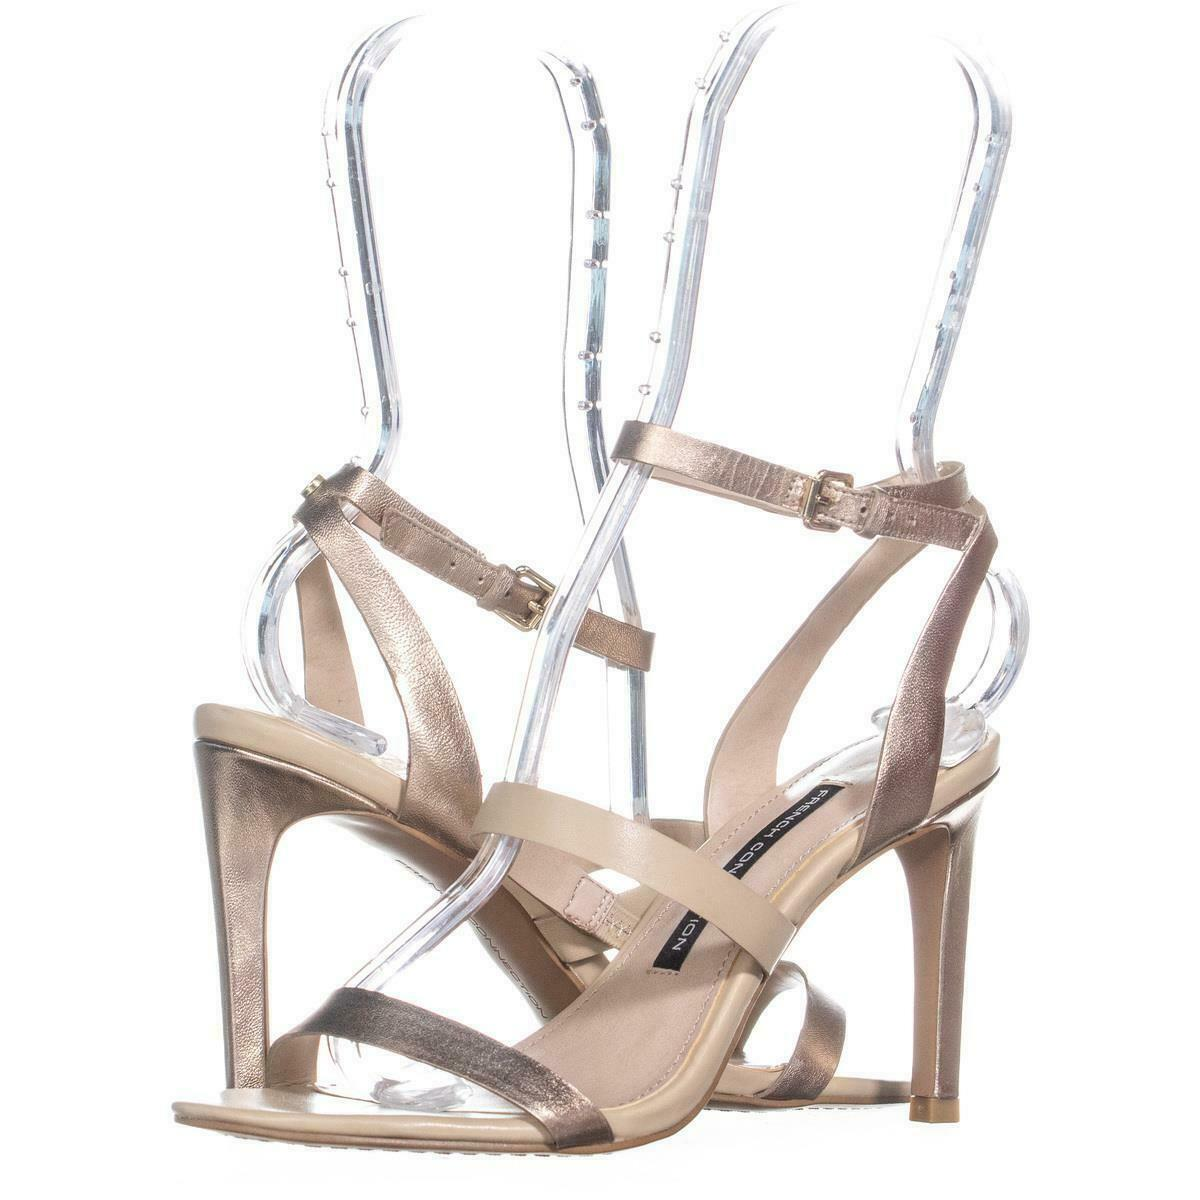 Primary image for French Connection Ankle Strap Sandals 543, Sand Gold, 6 US / 36 EU